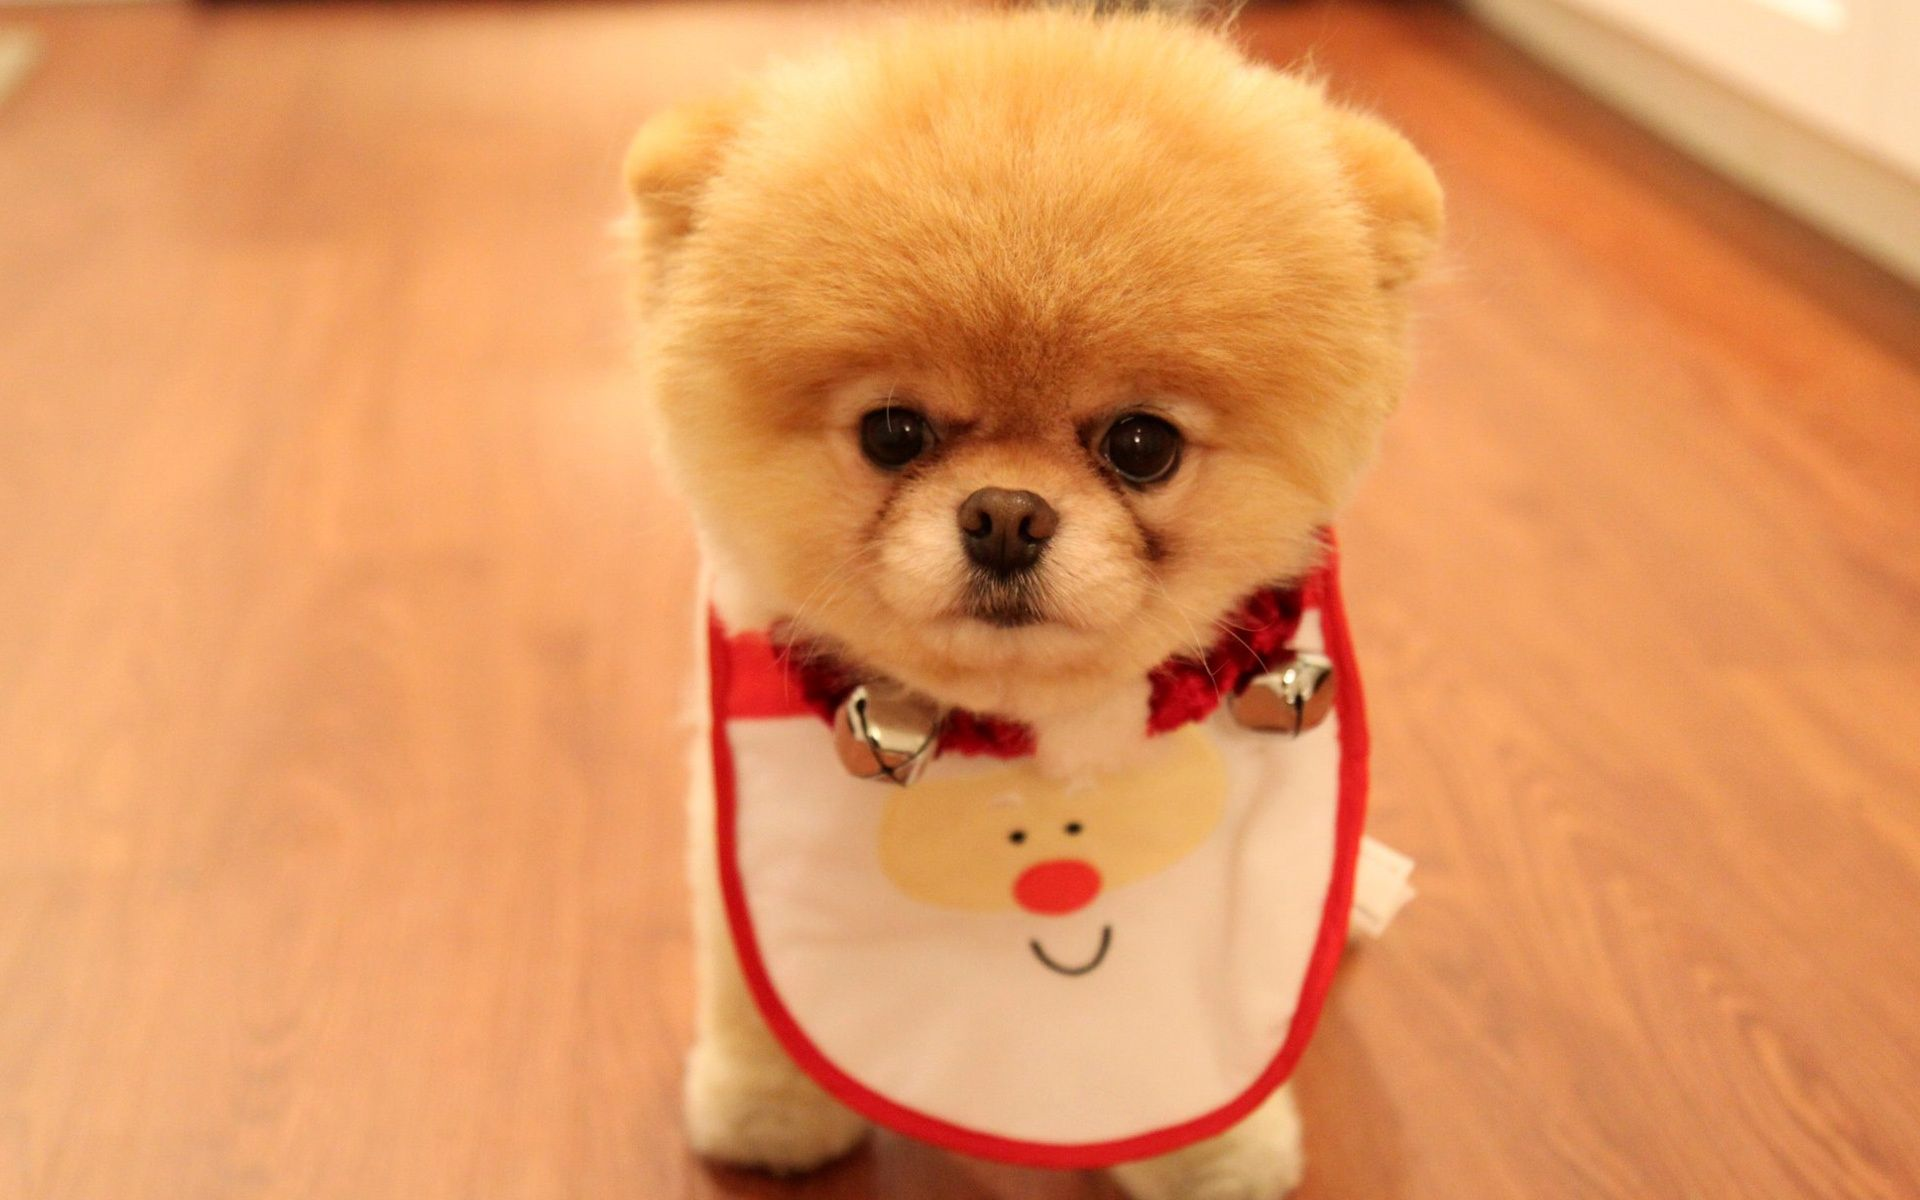 Cute Puppies Dogs Pics Cute Dog Christmas Hd Wallpaper Wallpaper With Images Boo The Dog Cute Little Dogs Boo The Cutest Dog